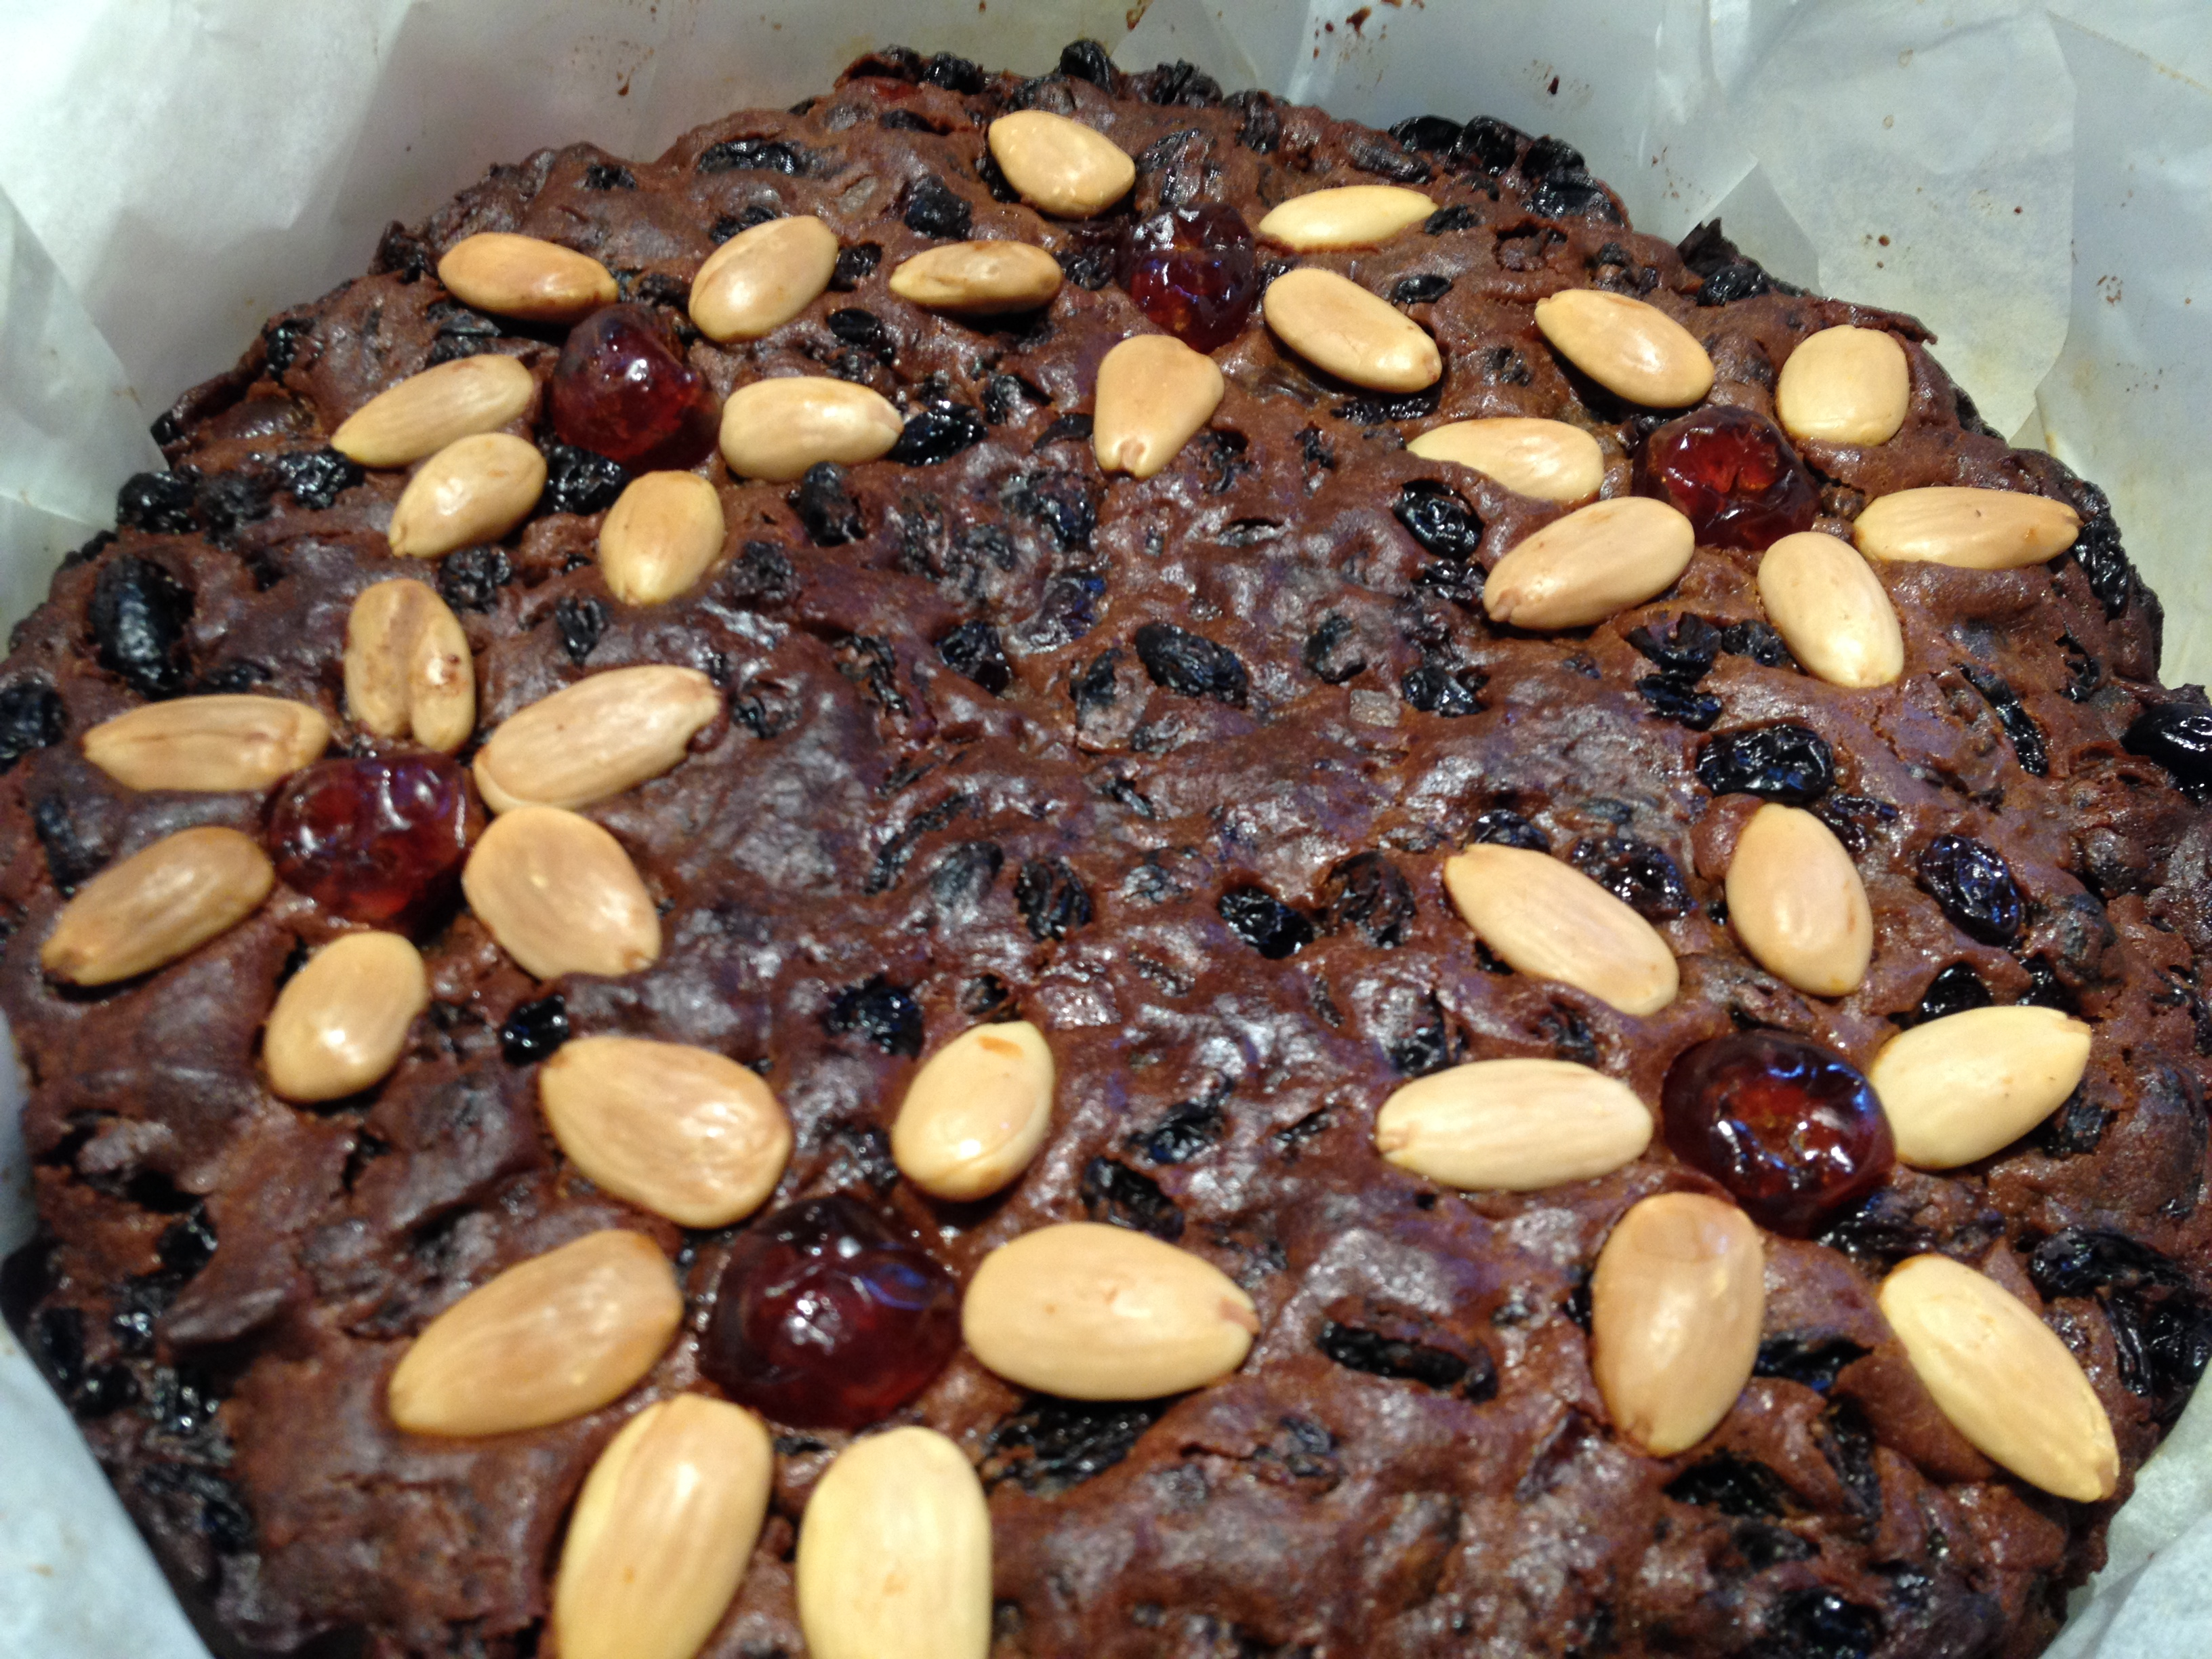 It's Time To Soak The Fruit For Your Christmas Fruit Cake!